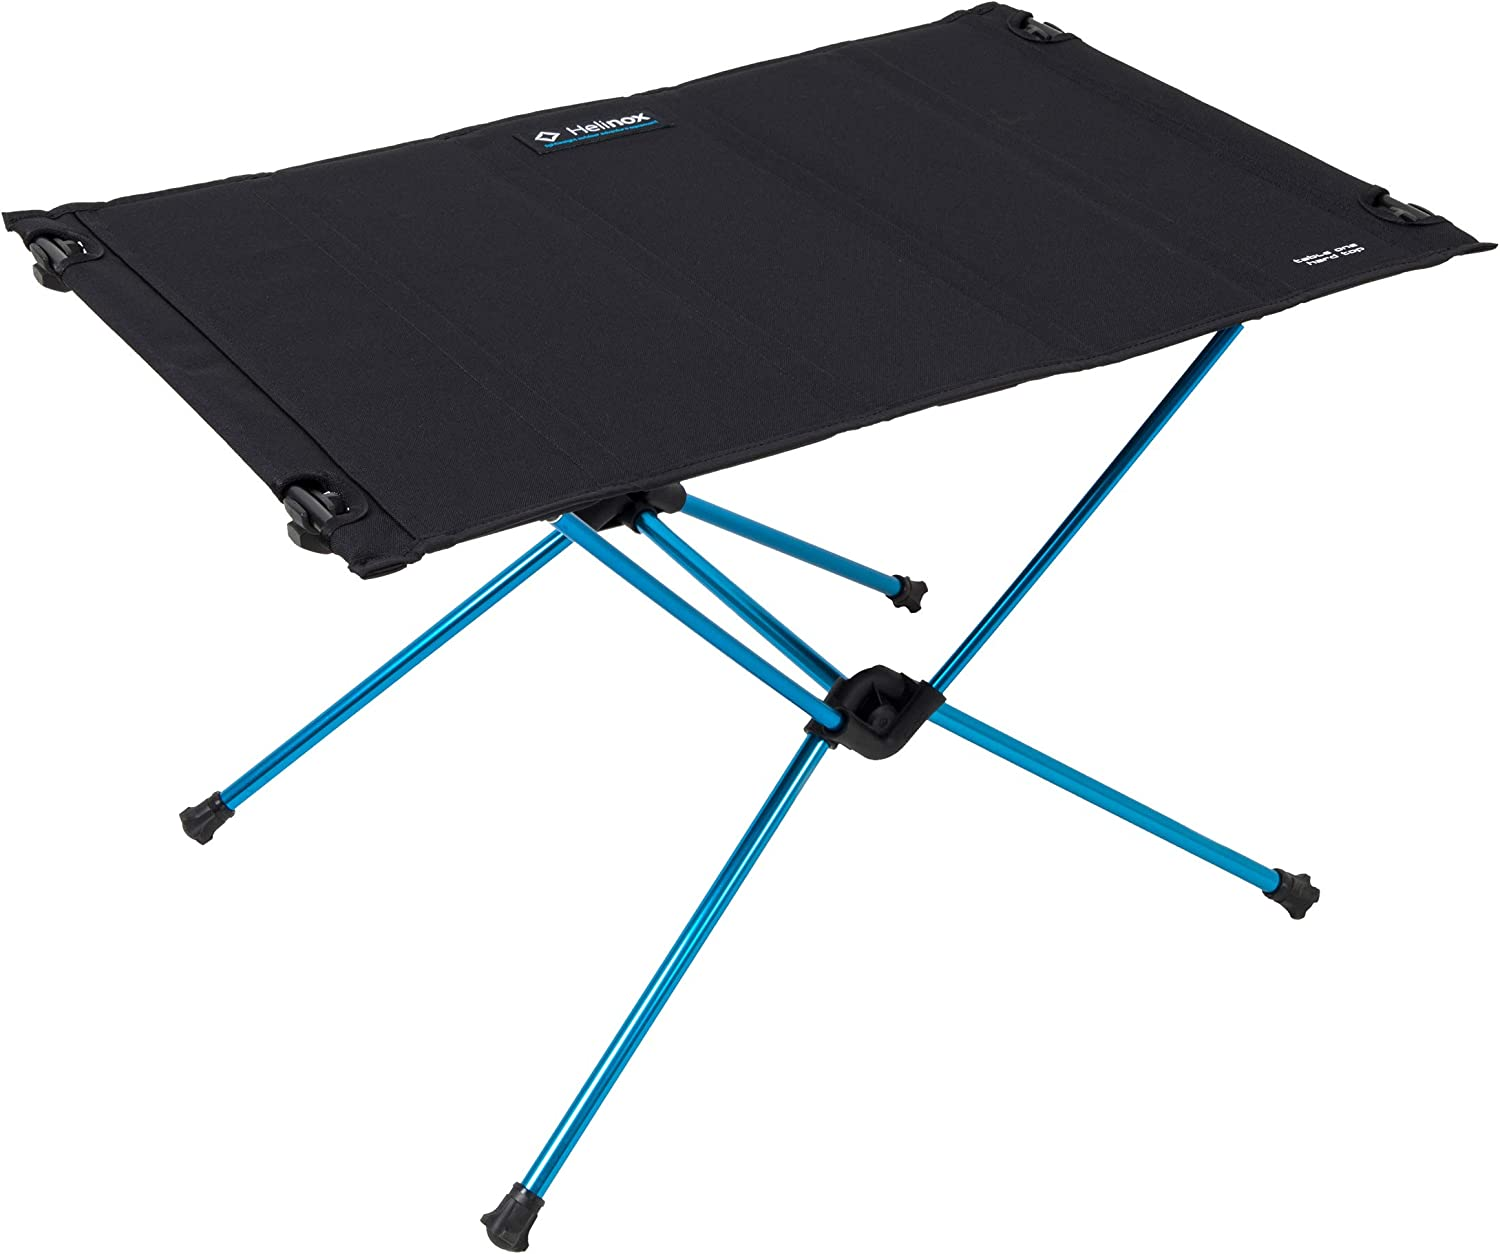 Helinox Table One Hardtop Lightweight, Collapsible, Portable, Outdoor Camping Table, Black